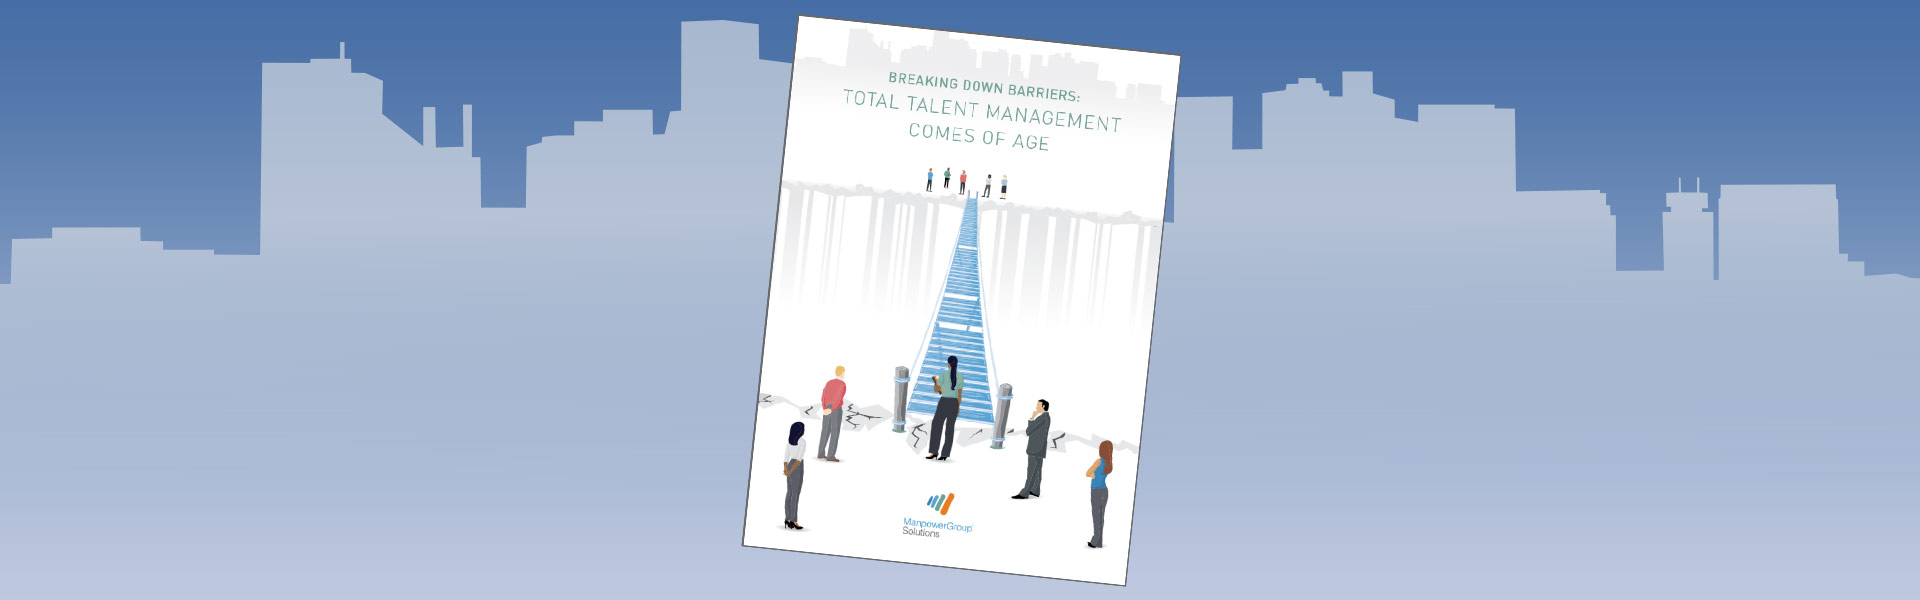 Breaking Down Barriers: Total Talent Management Comes Of Age